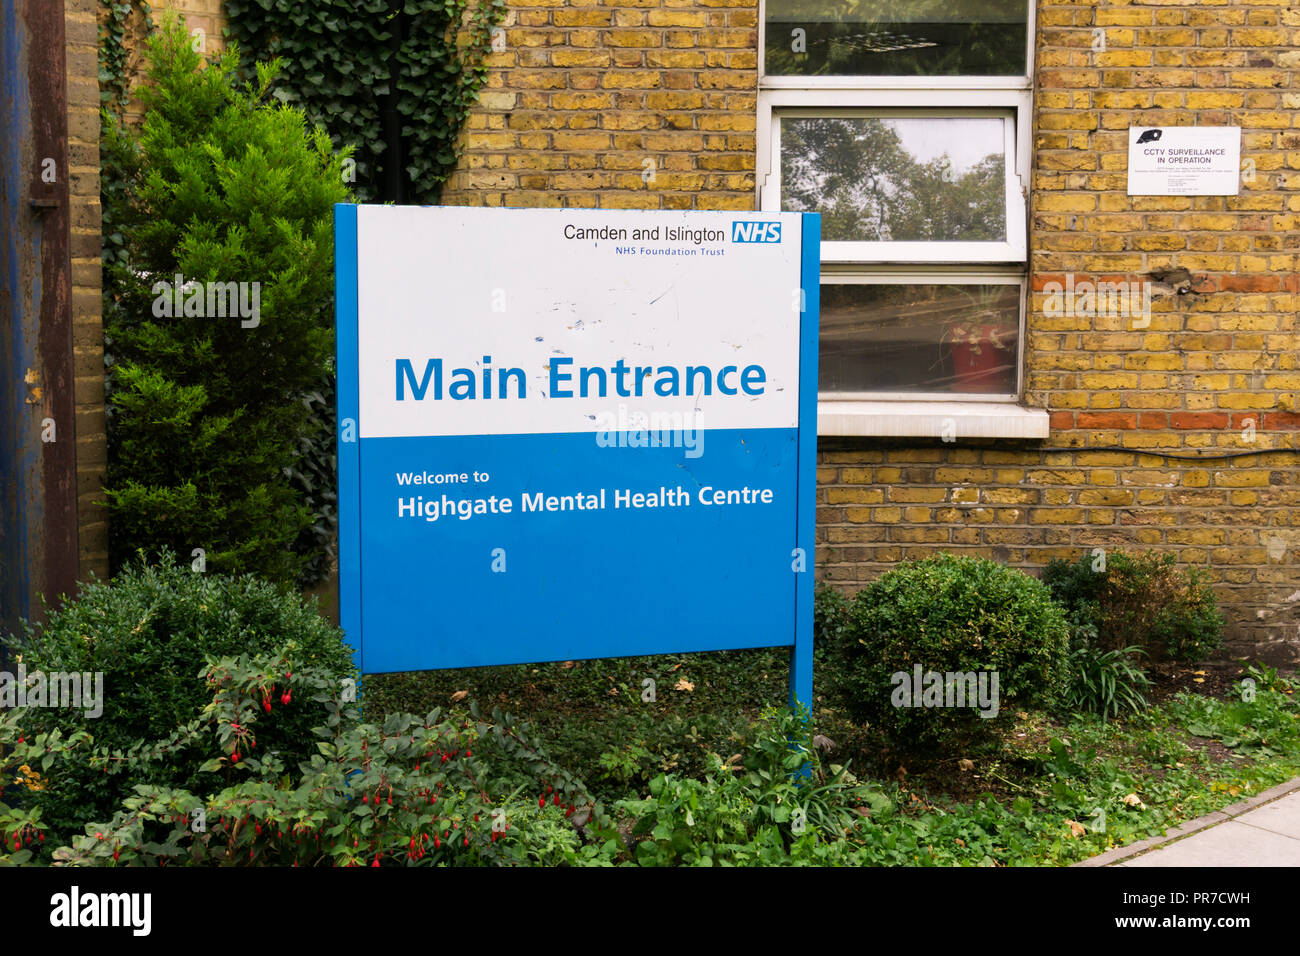 Highgate Mental Health Centre, part of the Camden and Islington NHS Foundation Trust. - Stock Image